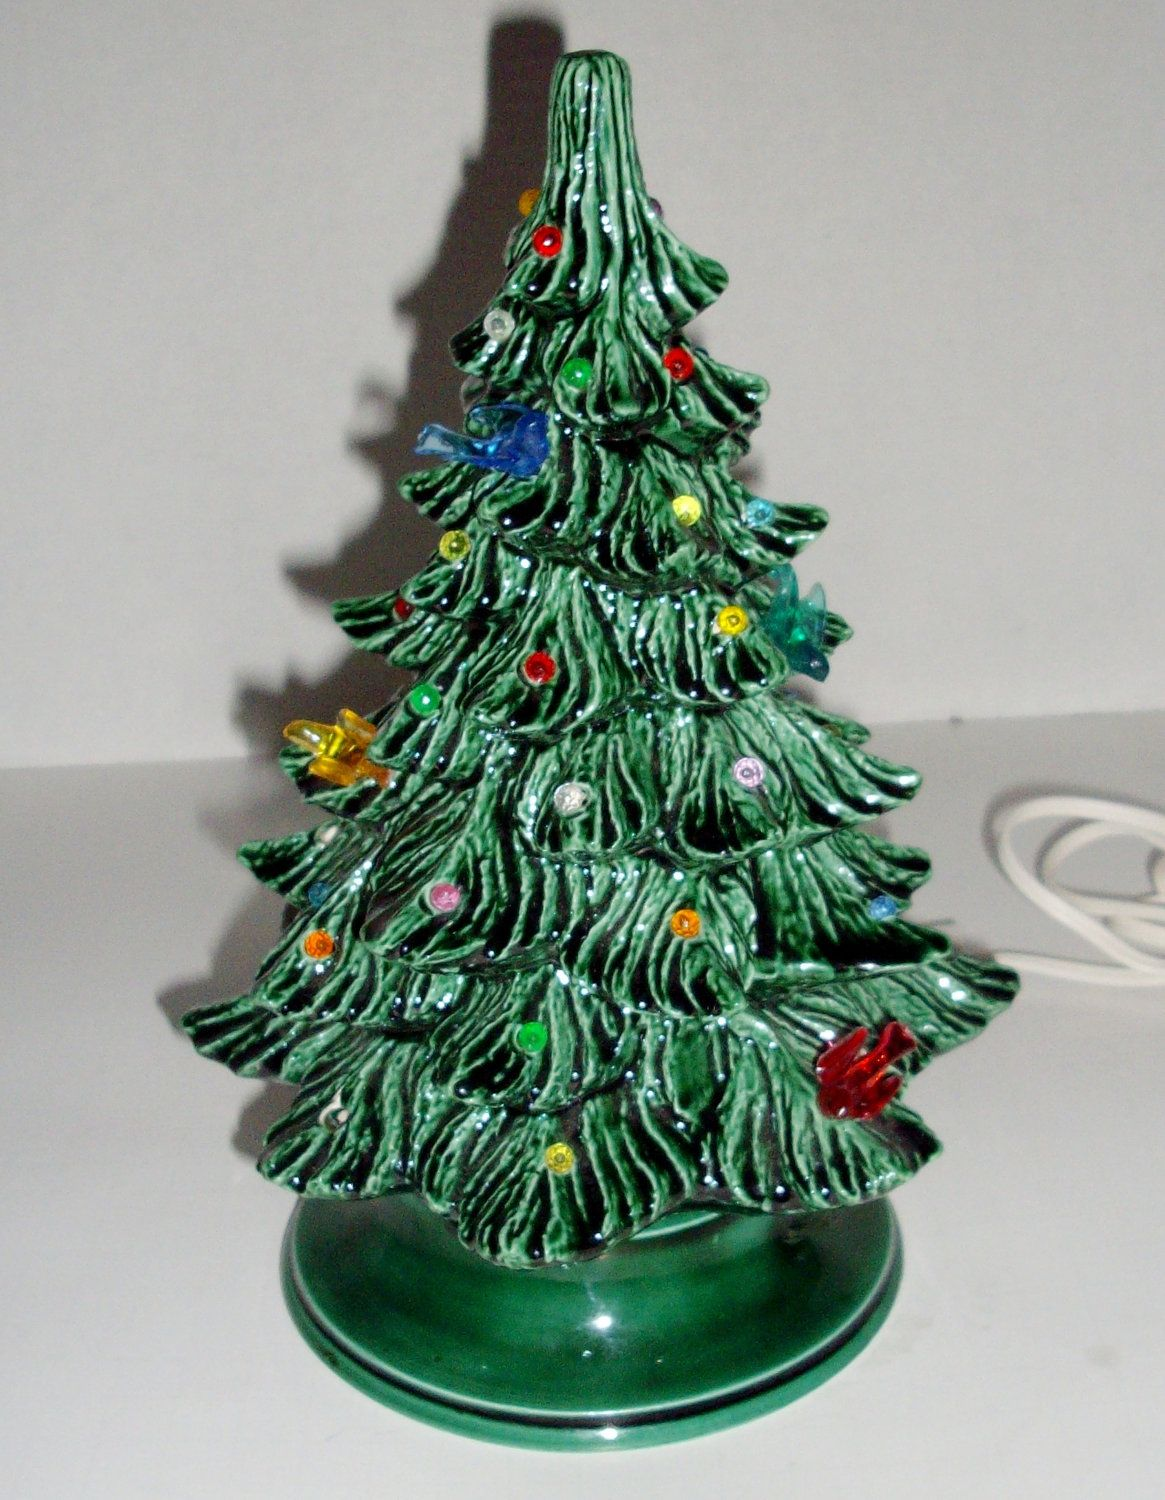 Ceramic Tabletop Christmas Tree With Lights Awesome Pinkerri George On Holidays  Pinterest  Vintage Christmas Design Decoration